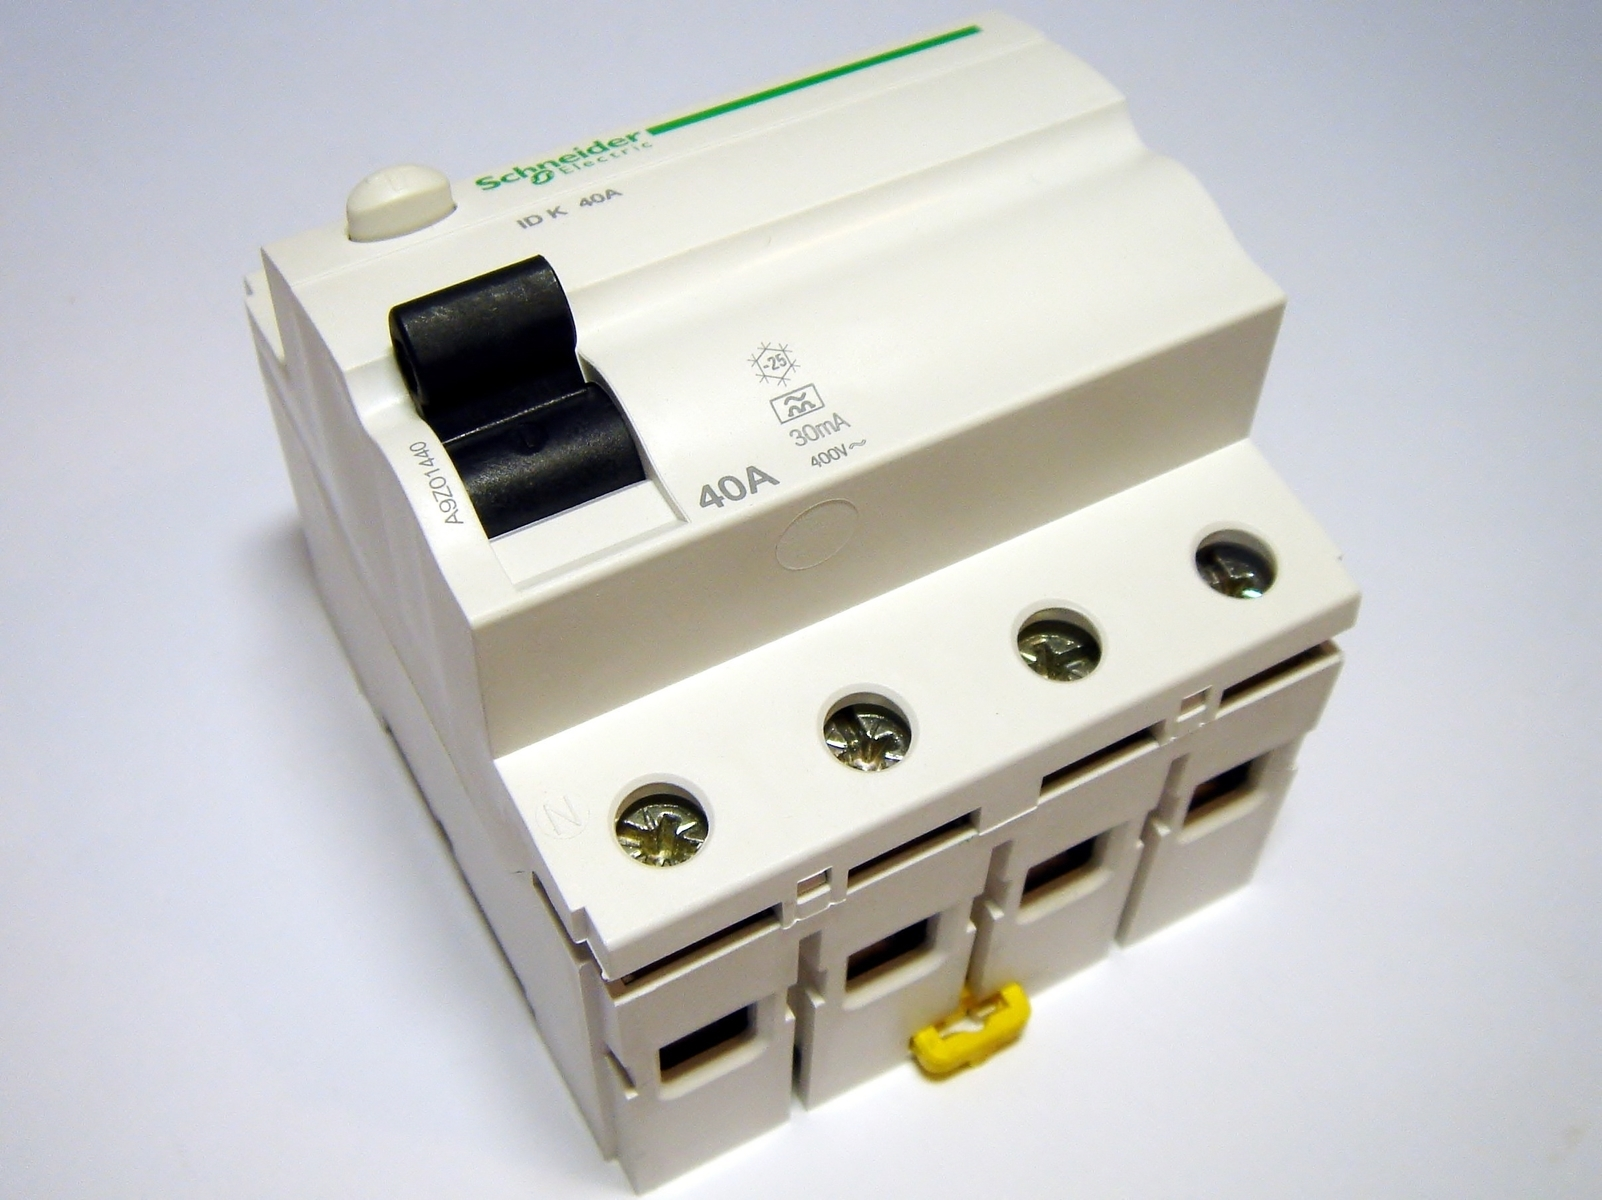 Rikkevoolukaitse 3-faasiline 40 A, 30mA(0,03A), Schneider Electric, A9Z01440, Acti 9 K, 048278